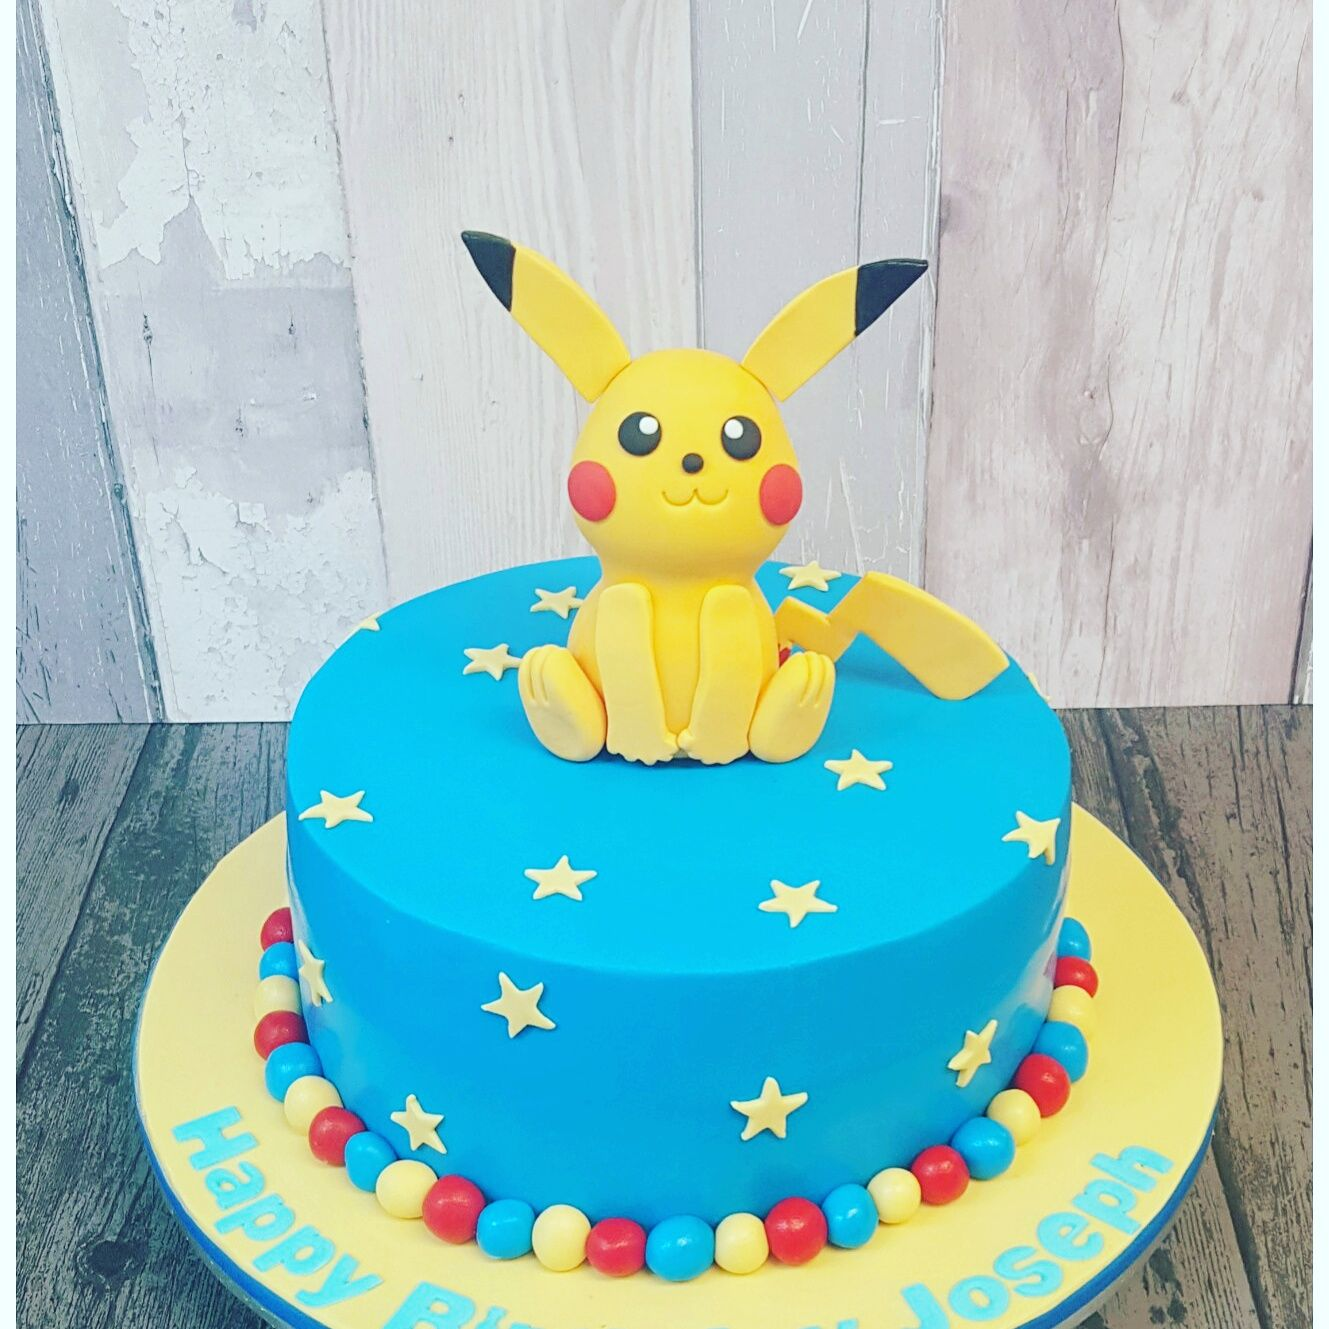 Pokemon Kuchen Rezept Add A 5 And A Pokeball Torten Mit Motiv Selbst Machen Pokemon